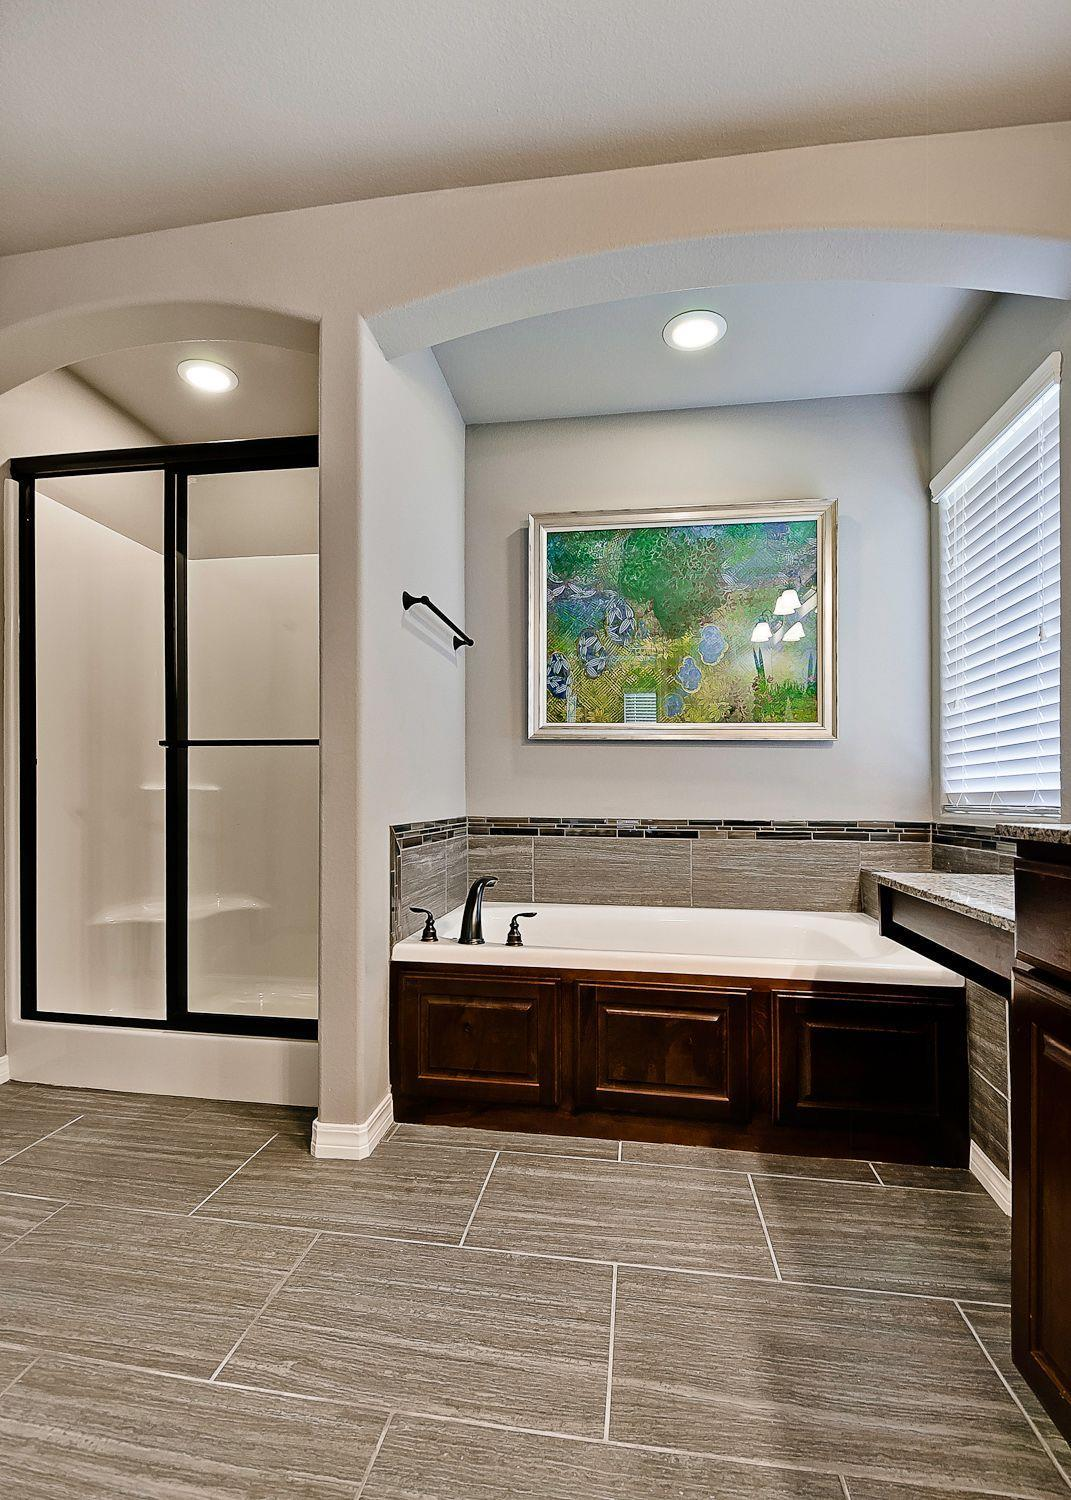 Bathroom featured in the Magnolia 1556 By Riverwood Homes - Arkansas in Fayetteville, AR